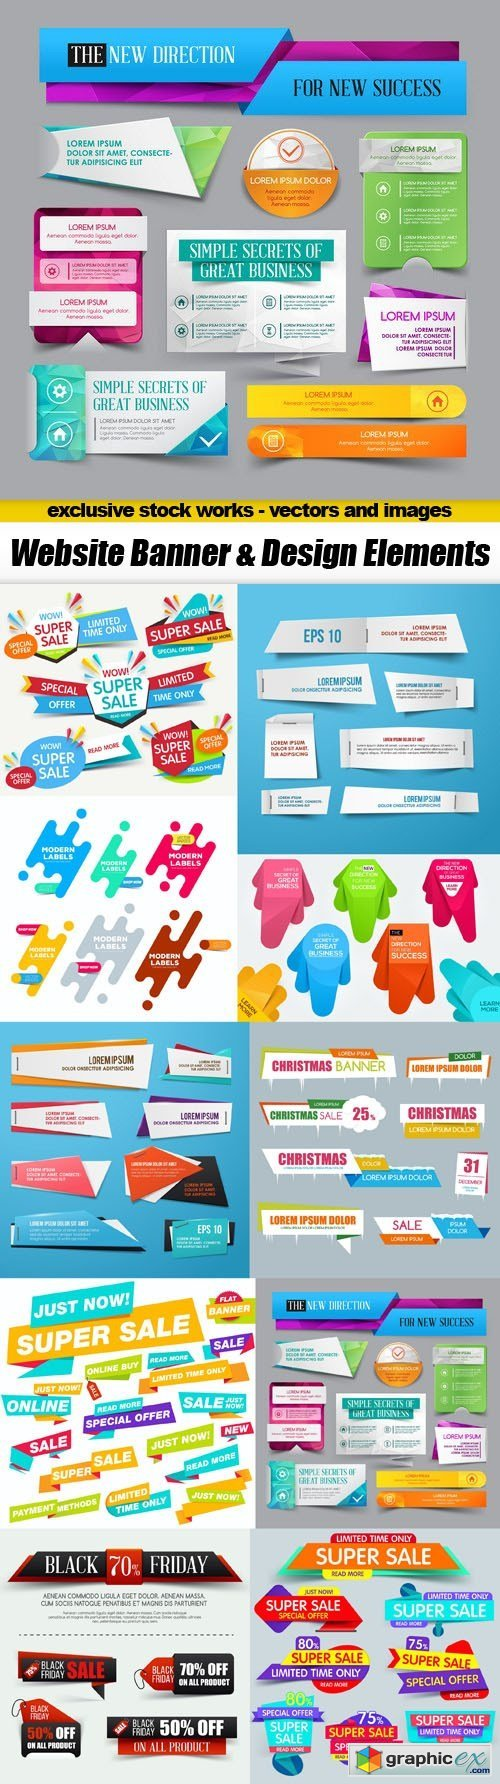 Website Banner & Design Elements - 10xEPS